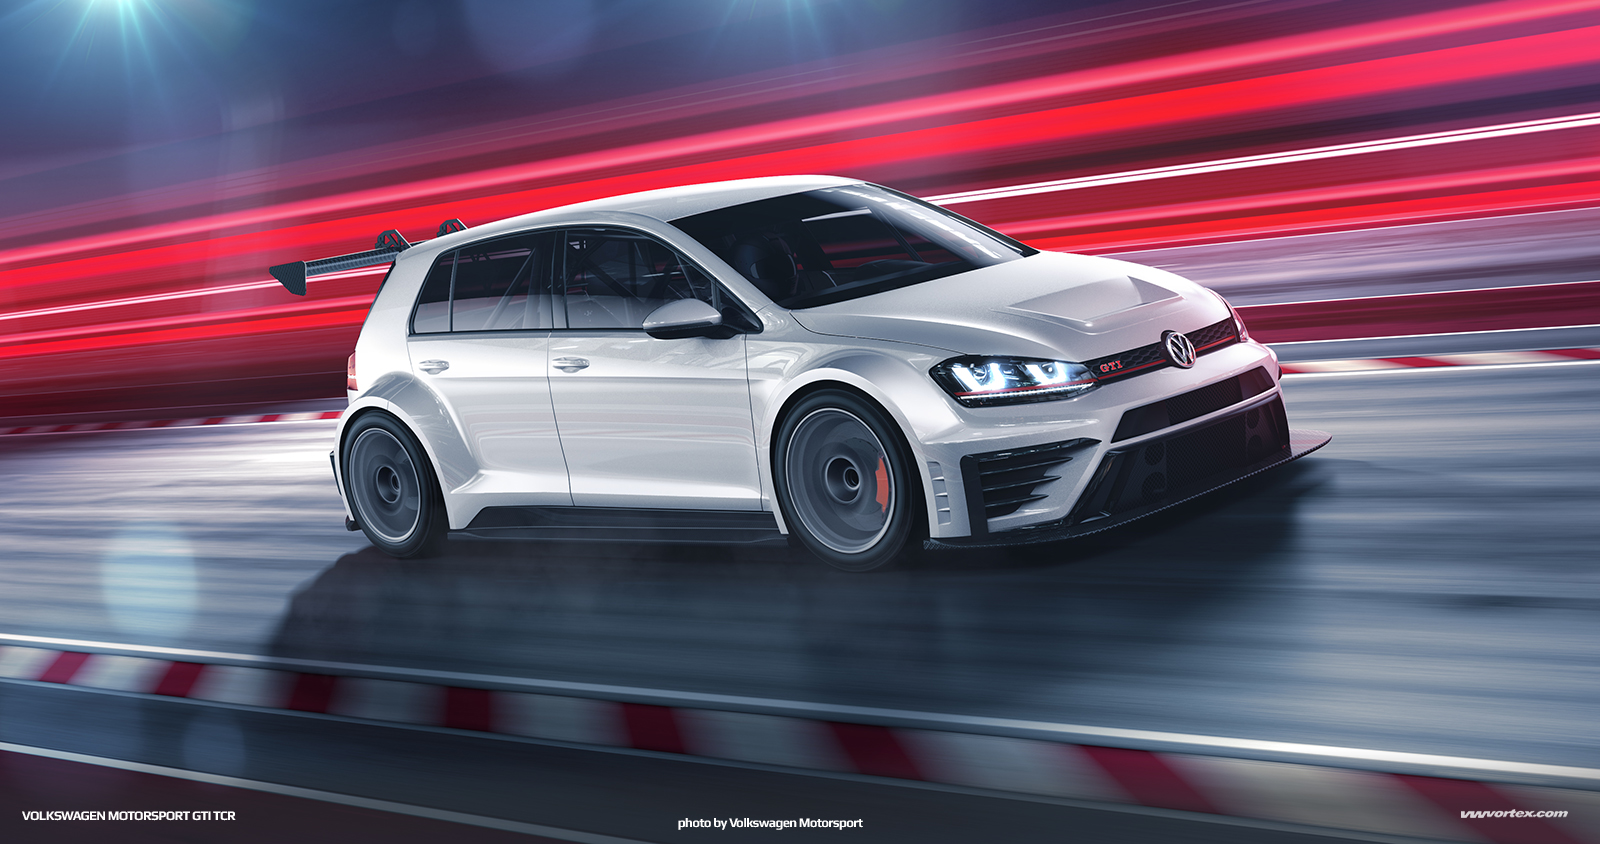 Mk7 VW Motorsport Golf GTI TCR Race Car Render